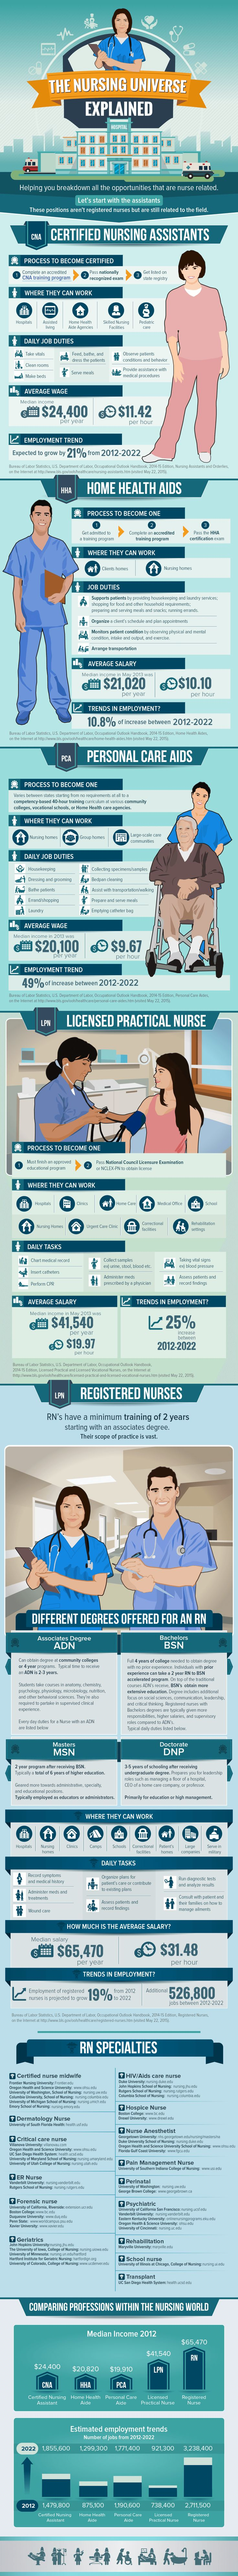 Best 25 nursing assistant training ideas on pinterest medical the nursing universe explained by cnacertification training xflitez Choice Image